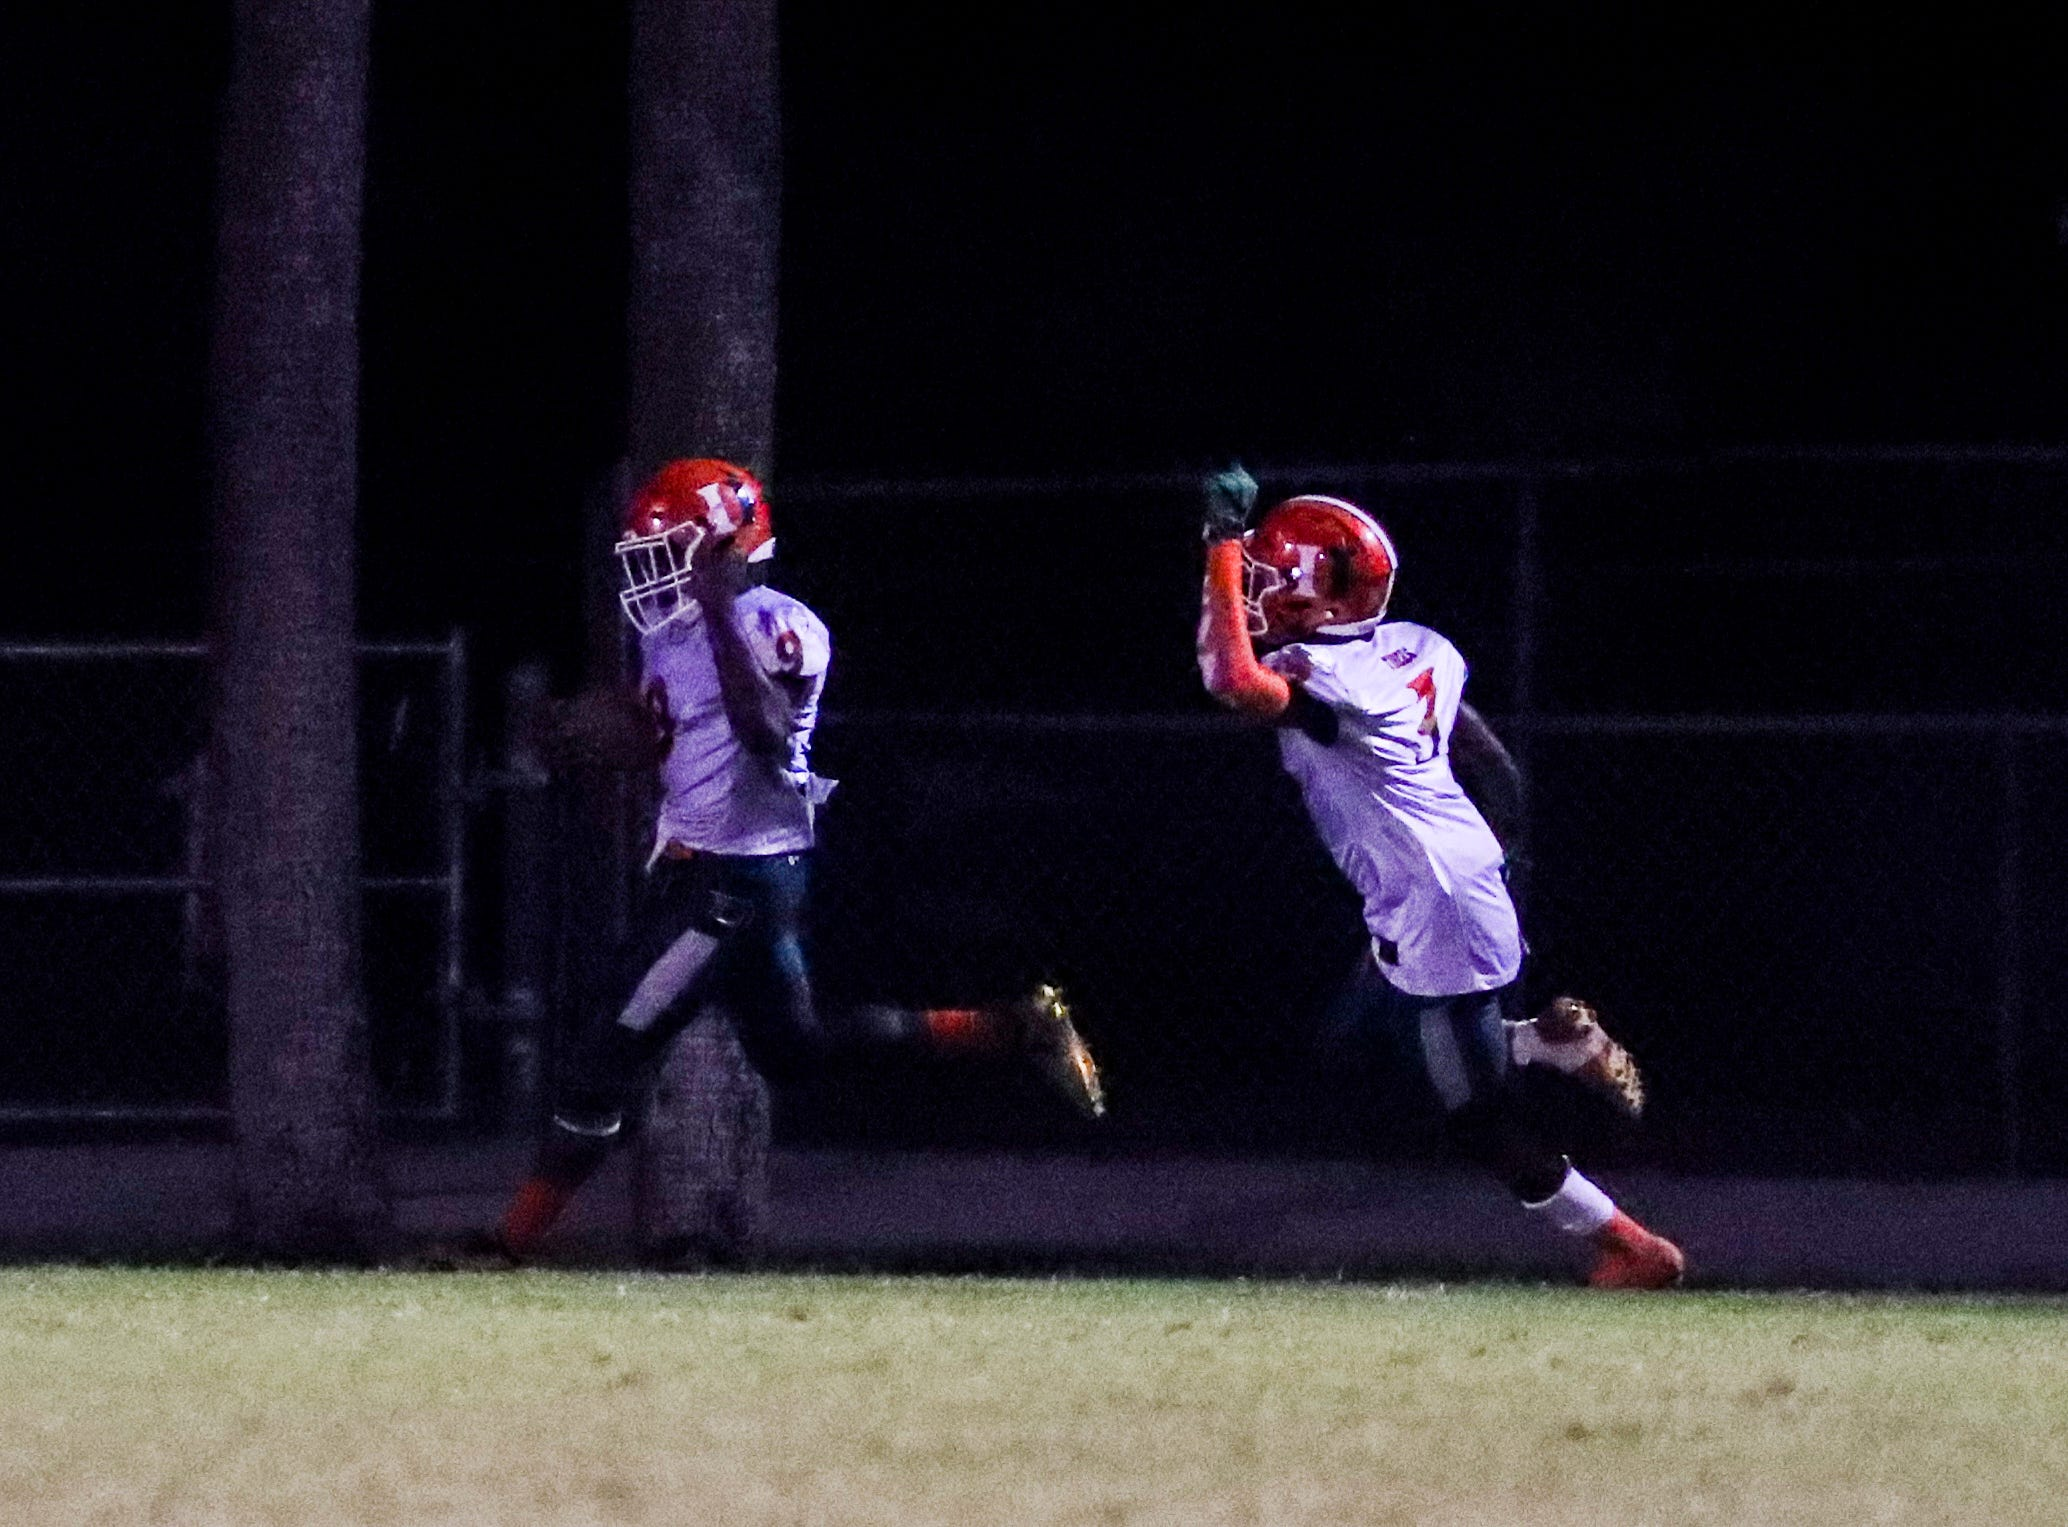 Seneca Milledge returned this kickoff return for a touchdown. Images from the Dunbar at Riverdale high school football game, Friday, September 8th, 2018.